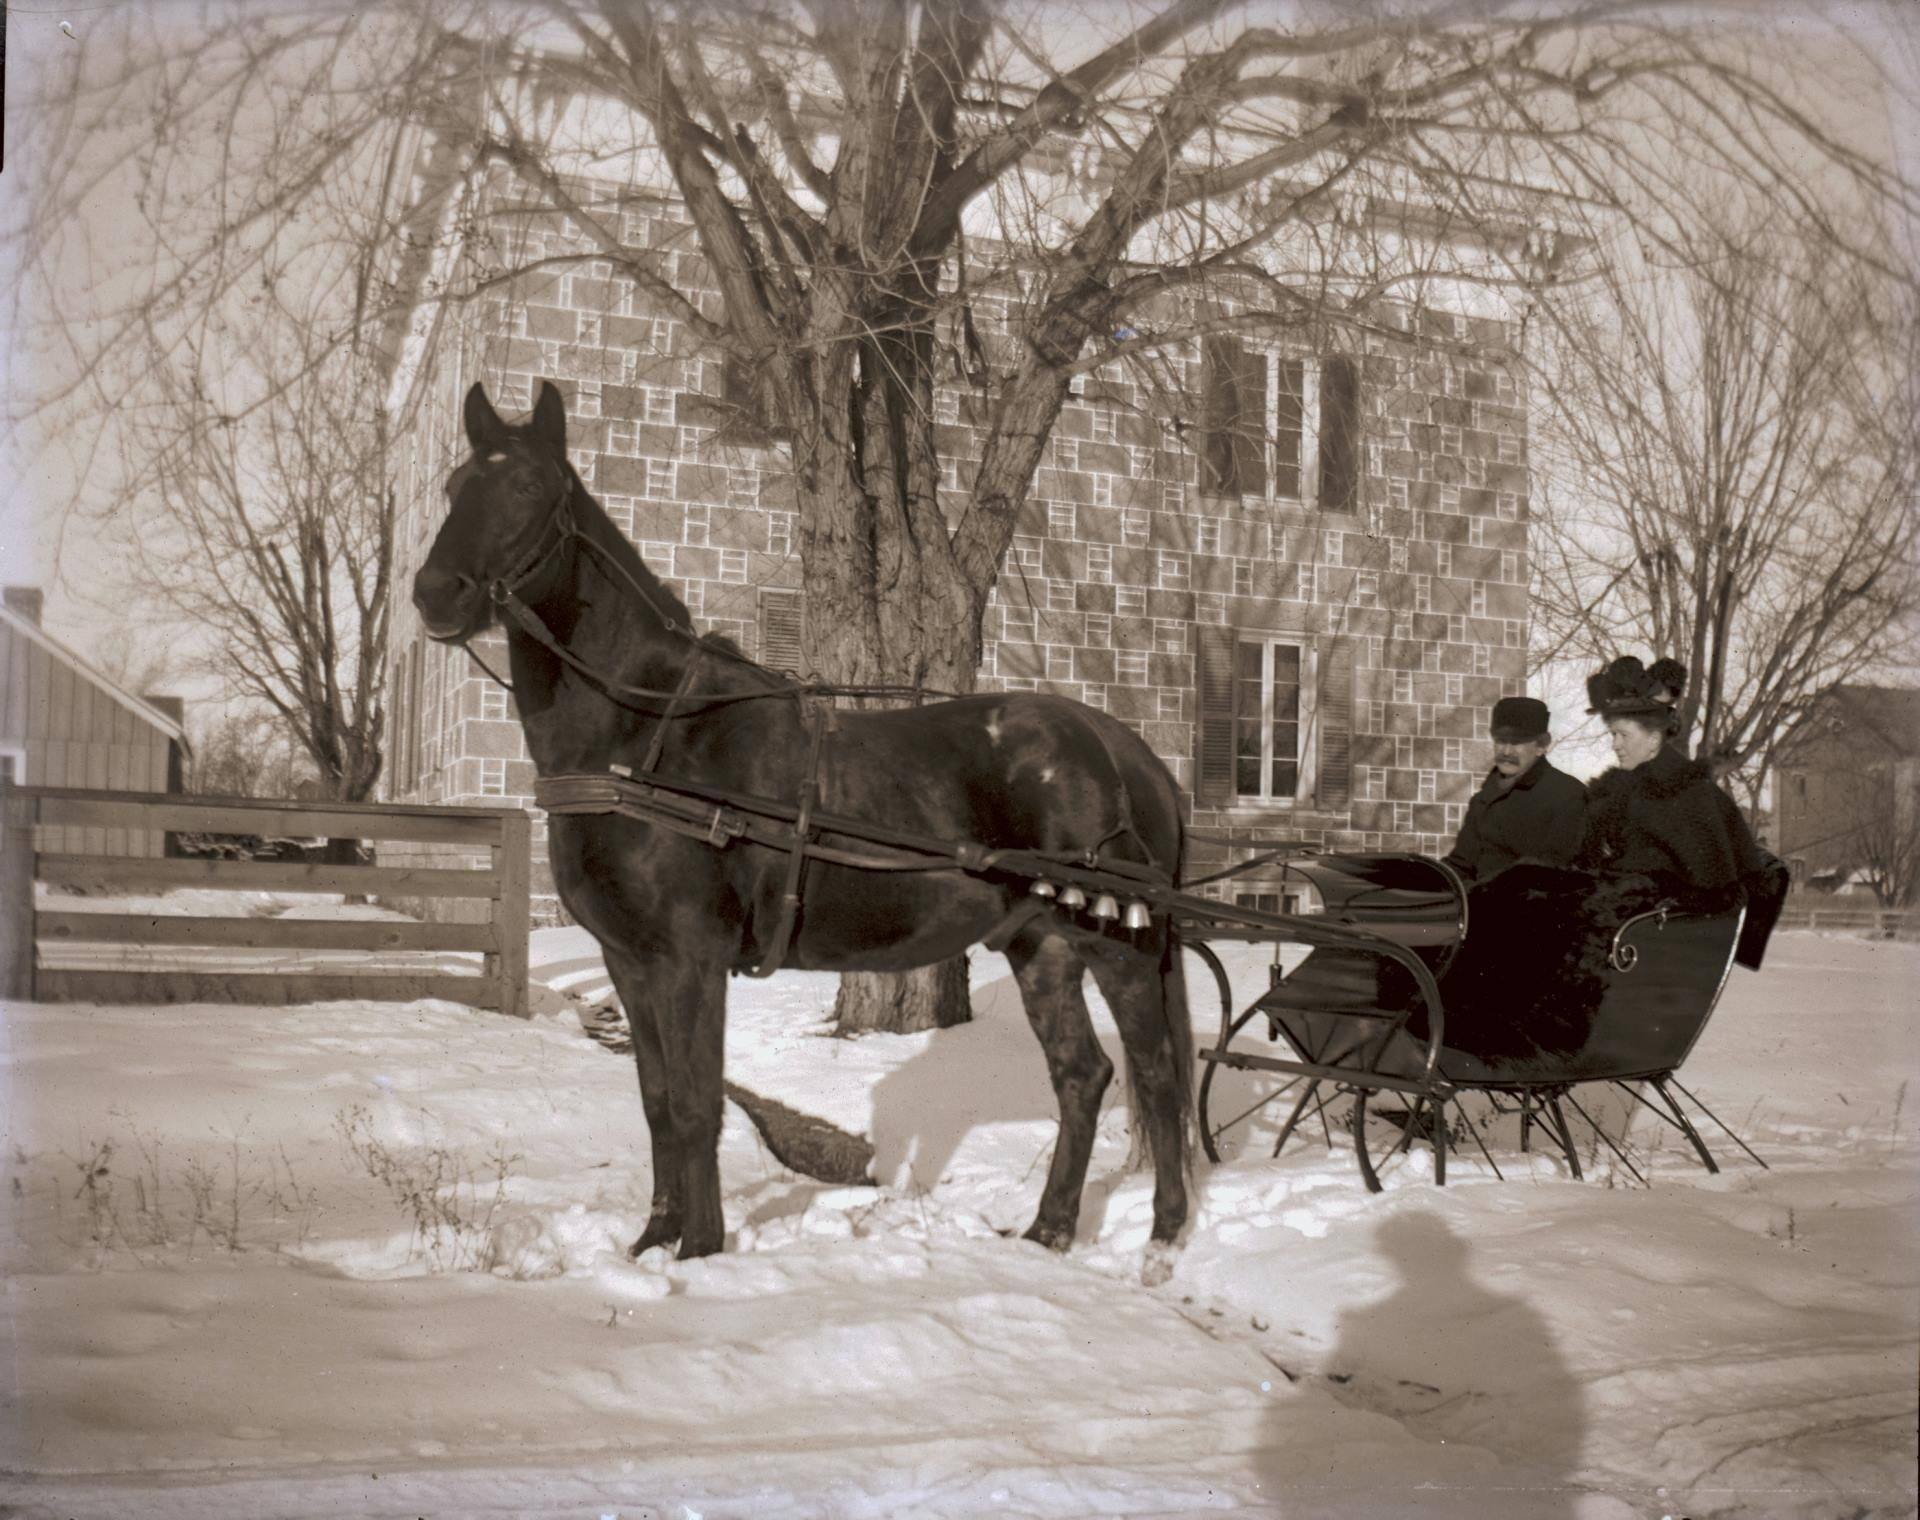 Sleigh ride in front of a stone house make with 'block and stack' technique.